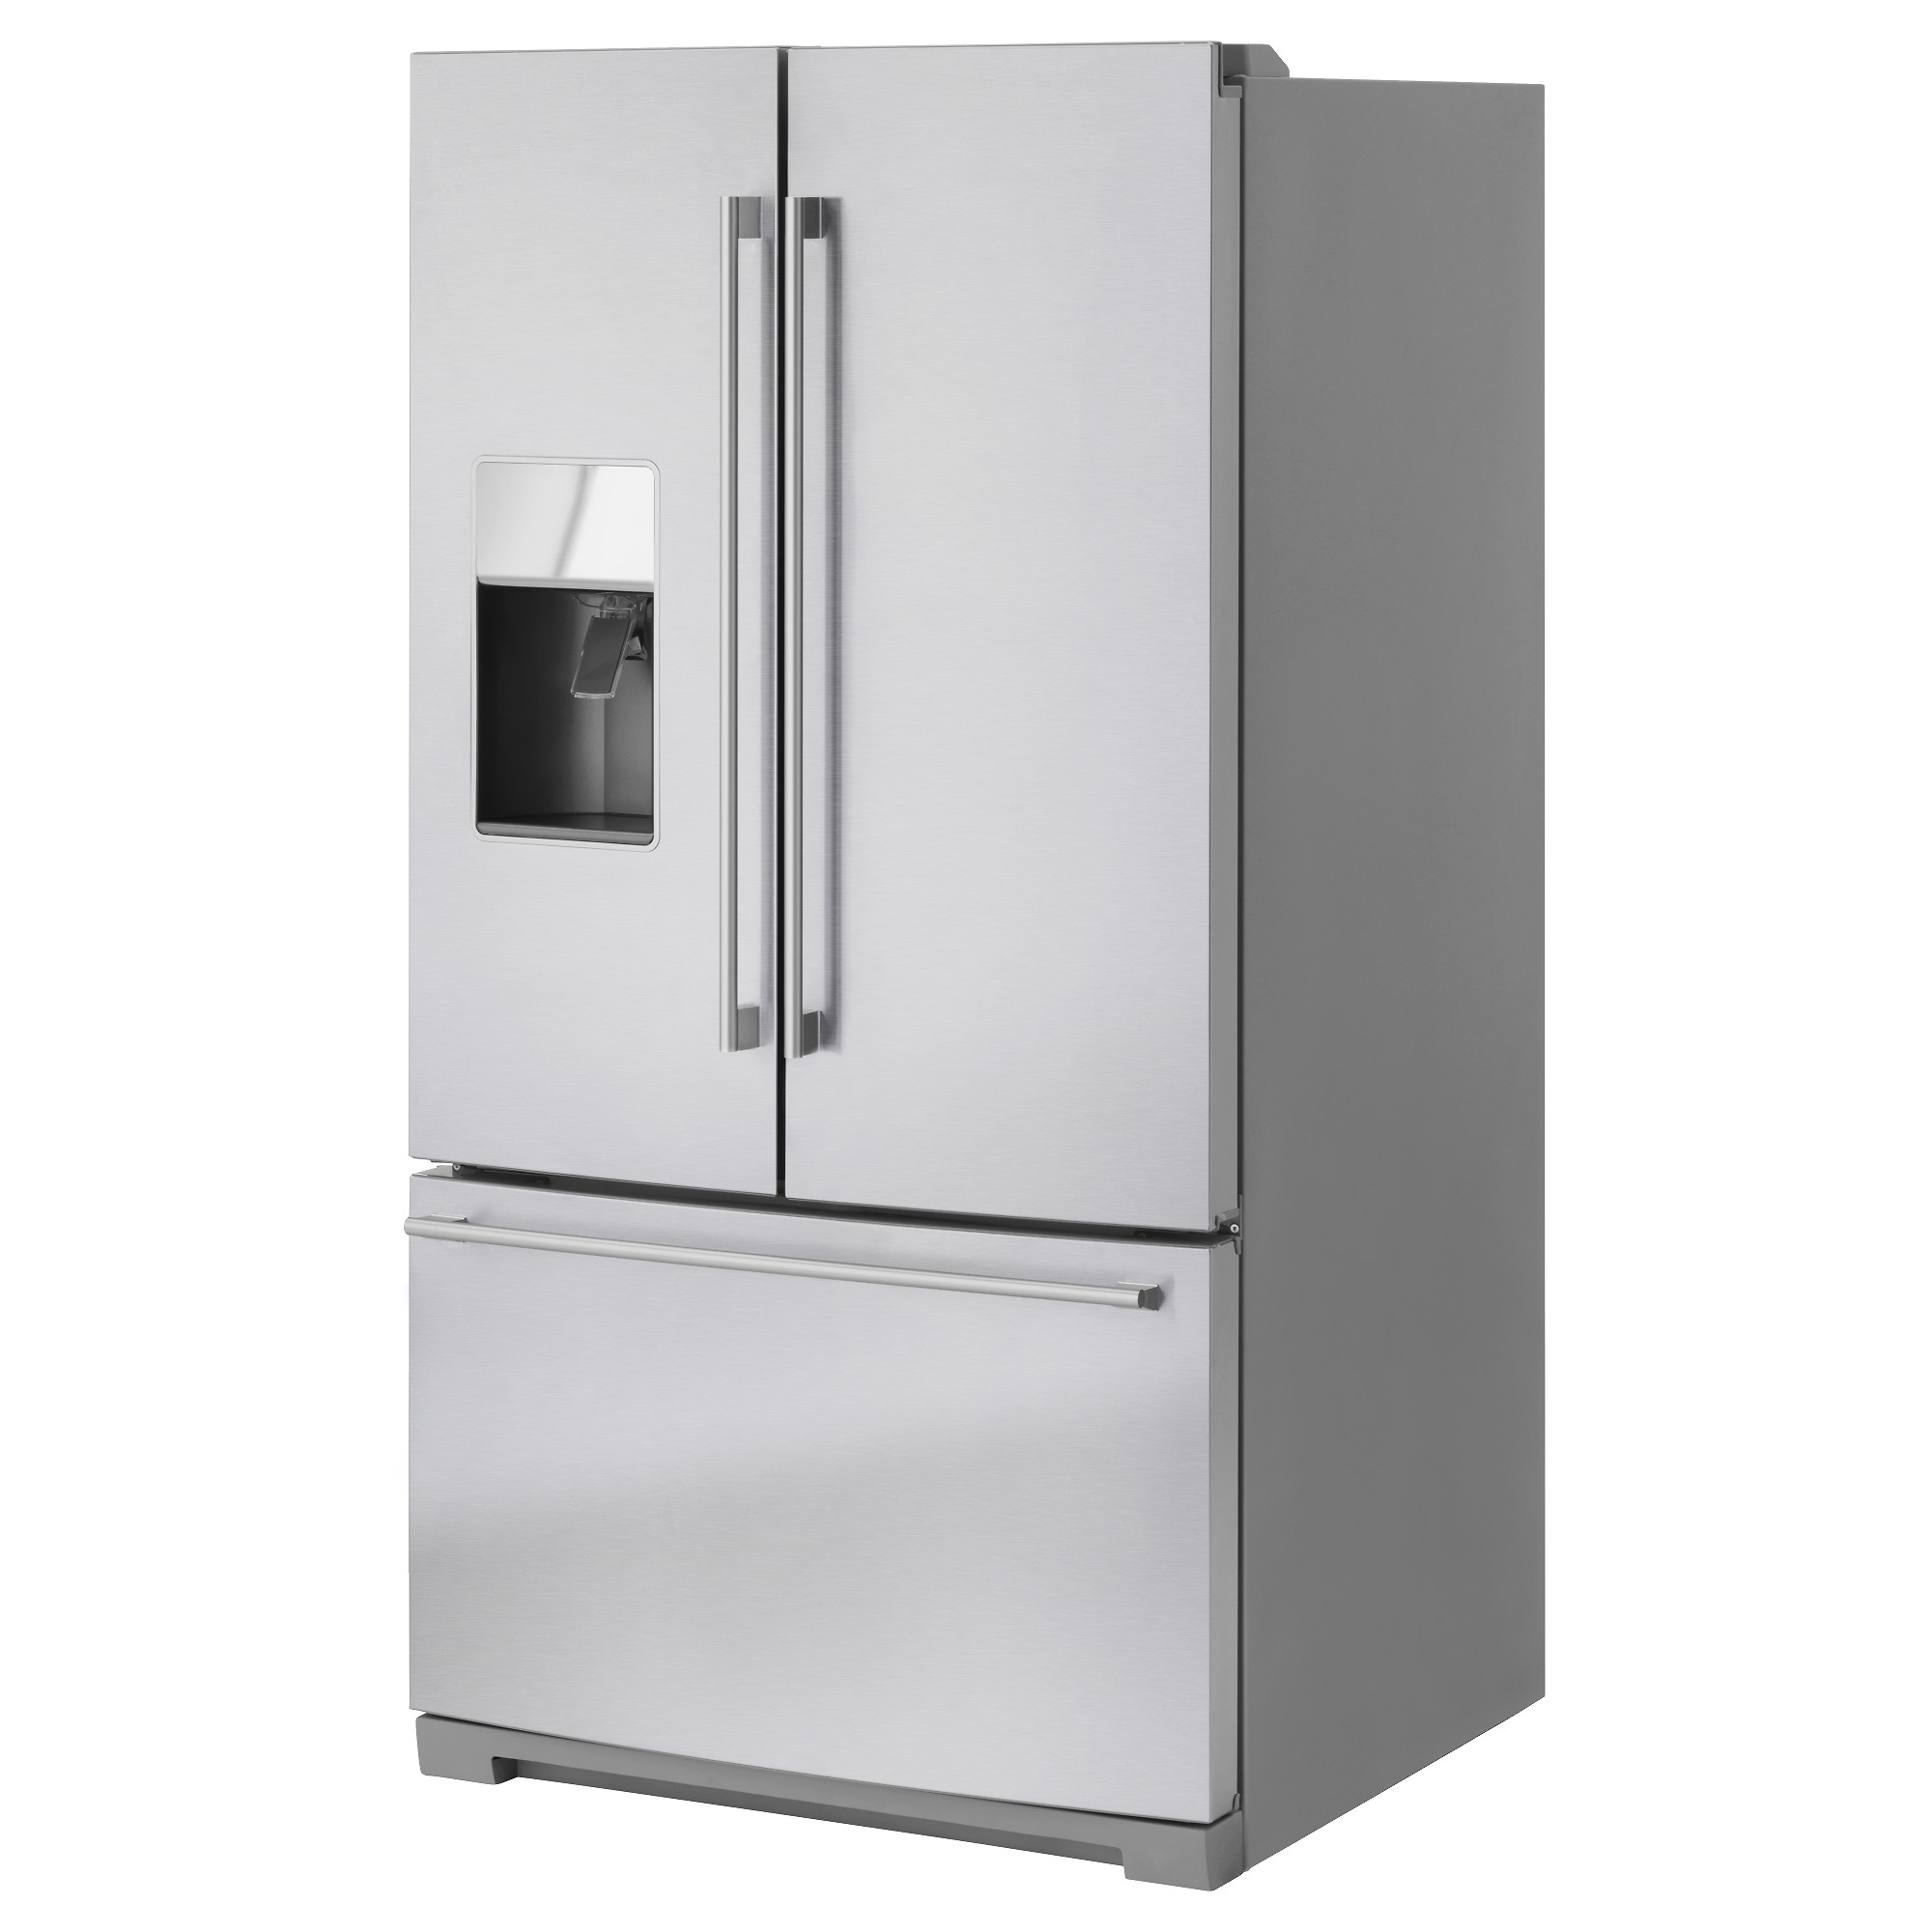 Ikea Liances Are Their Refrigerators A Good Deal